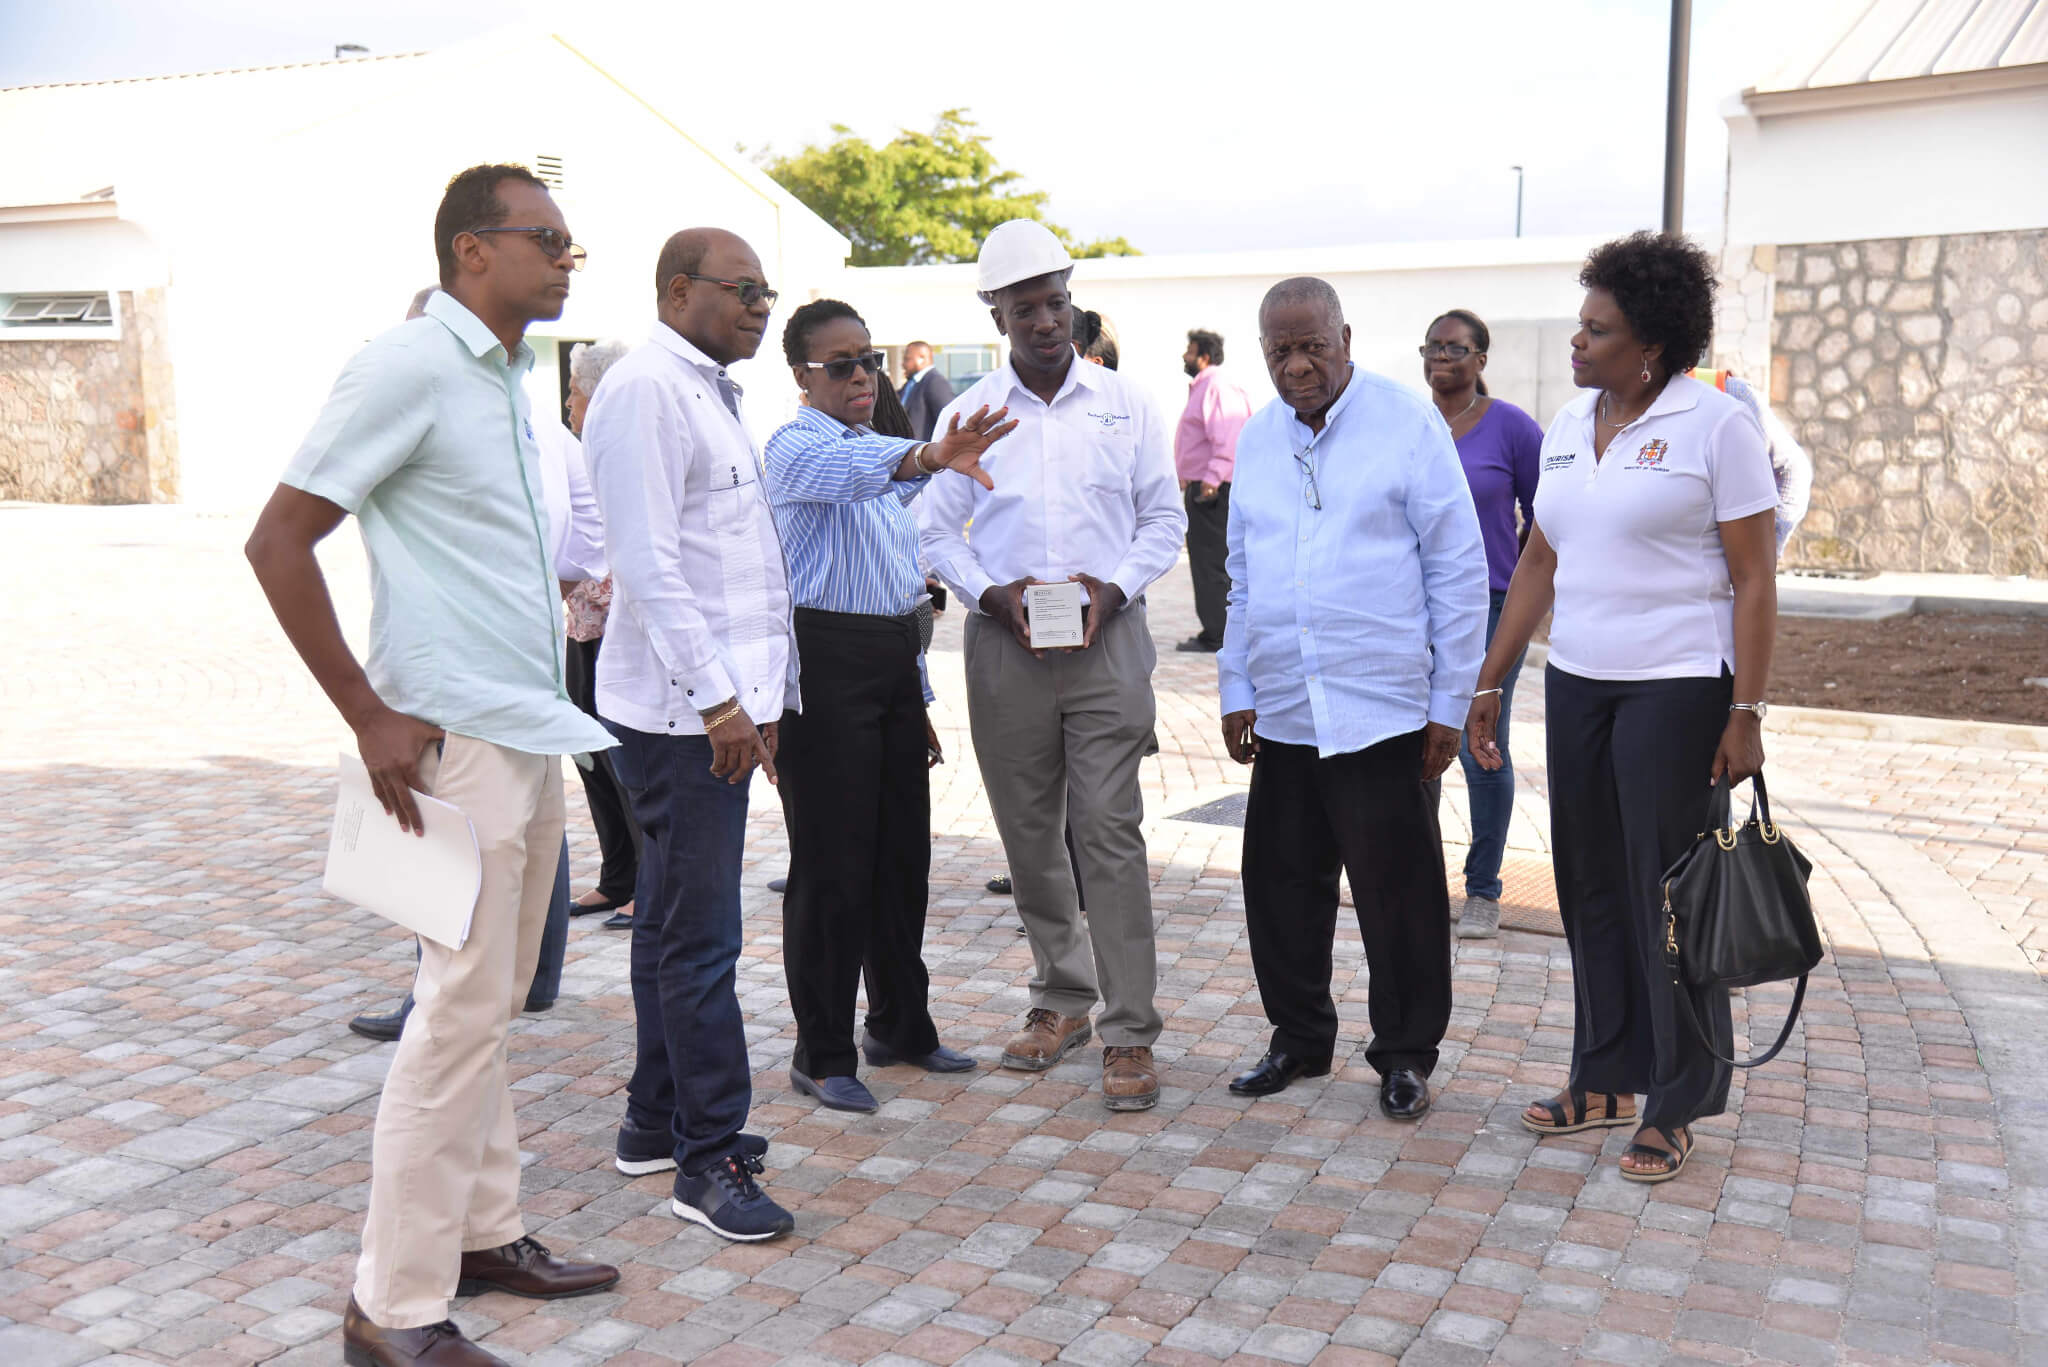 Jamaica's first Artisan Village takes shape… Next steps, theming, says Bartlett